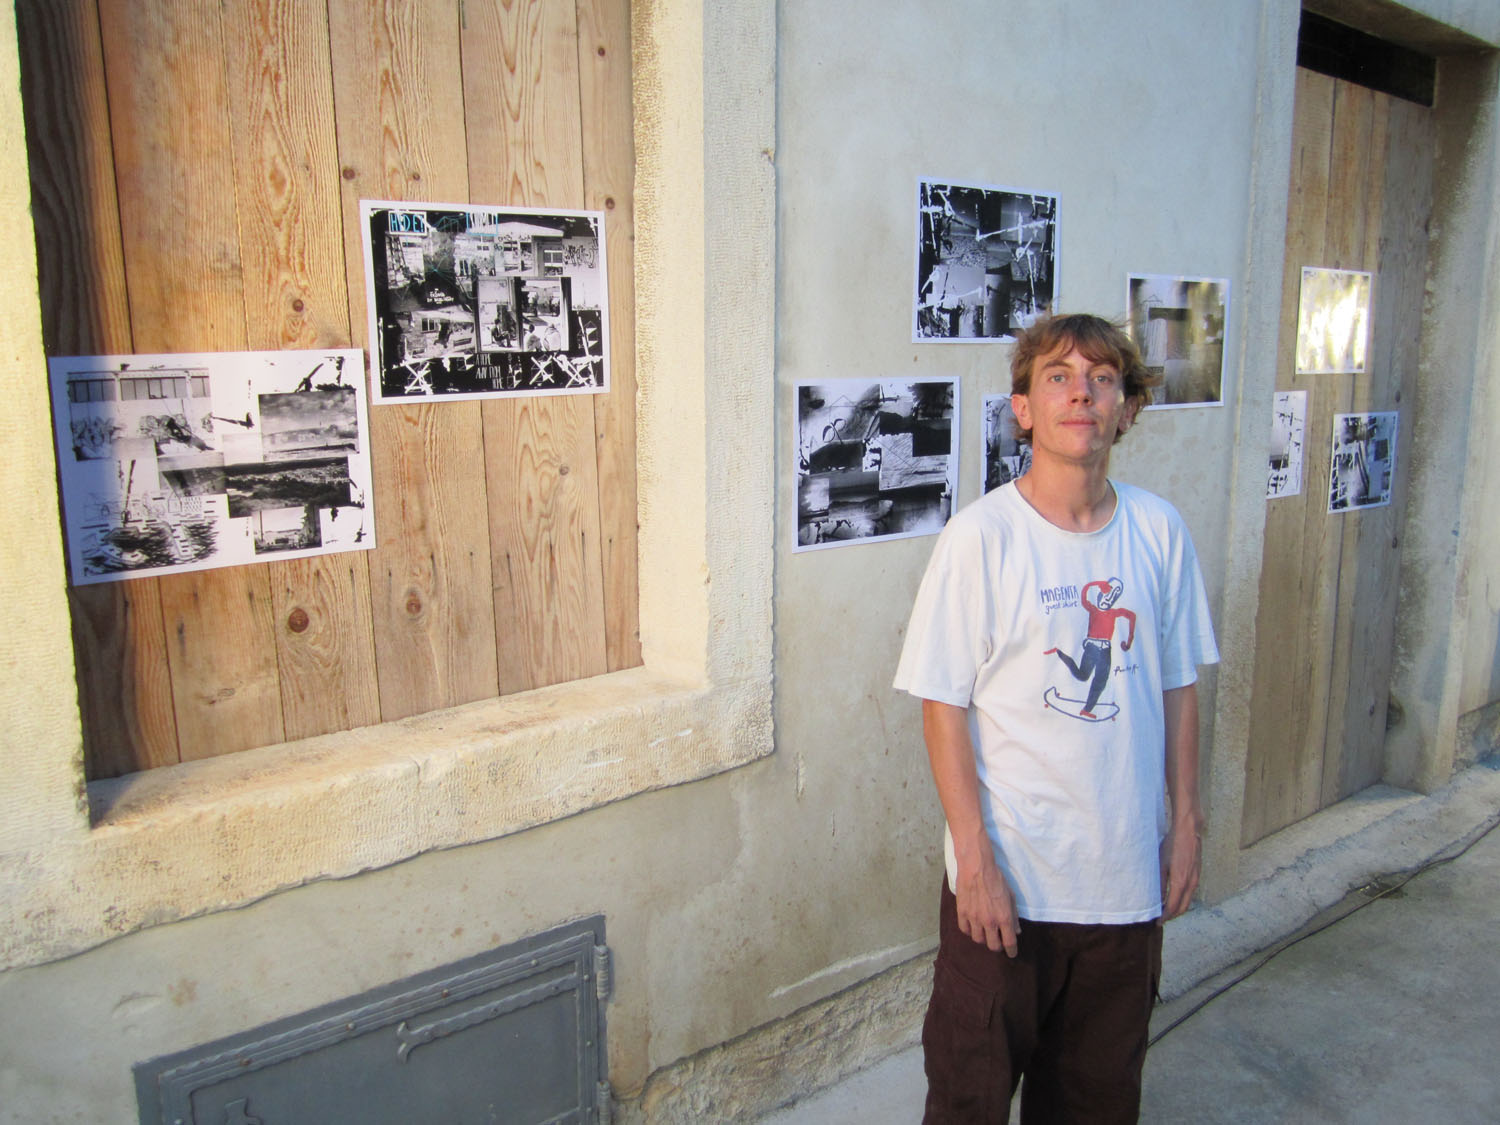 Aymeric Nocus photo exhibition @ Vladimir Film Festival 2015. Ph. : Will Harmon / Free Skate Mag